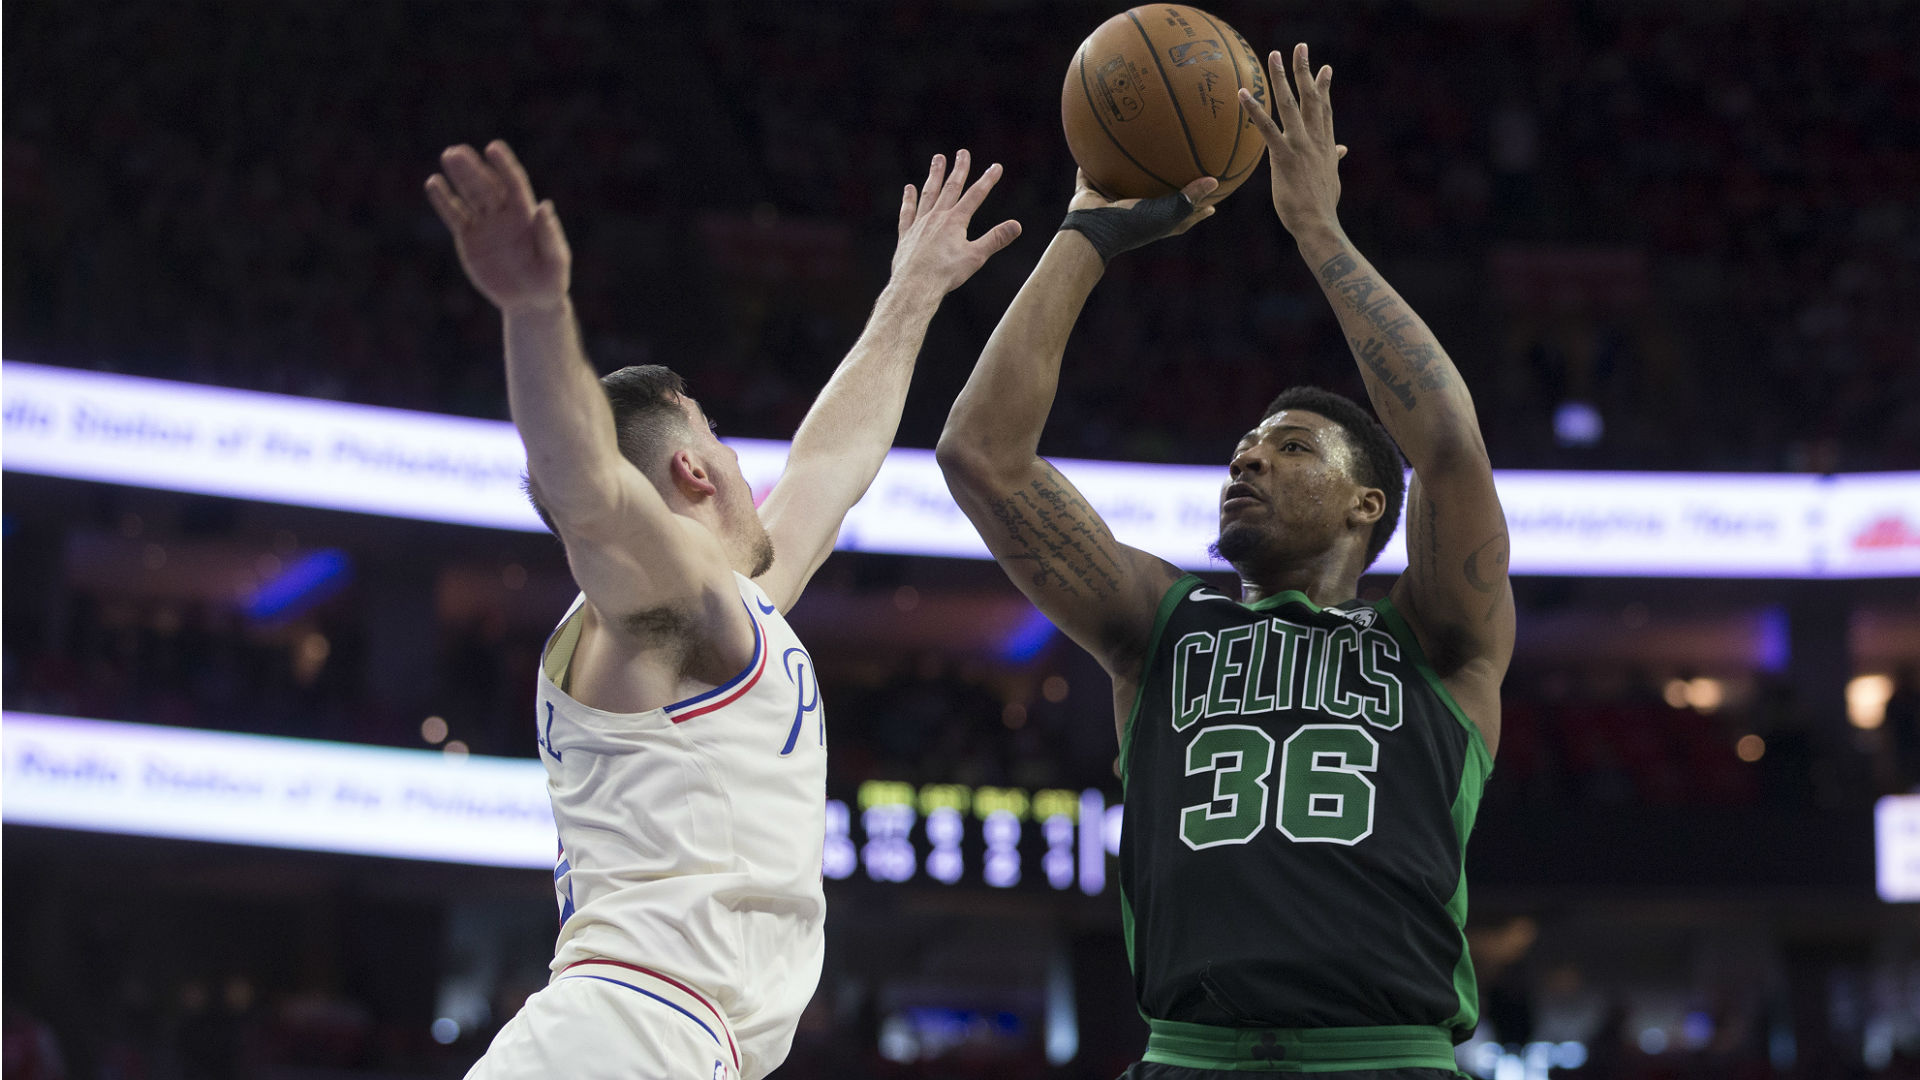 NBA free agency rumors: Marcus Smart likely to accept qualifying offer from Celtics